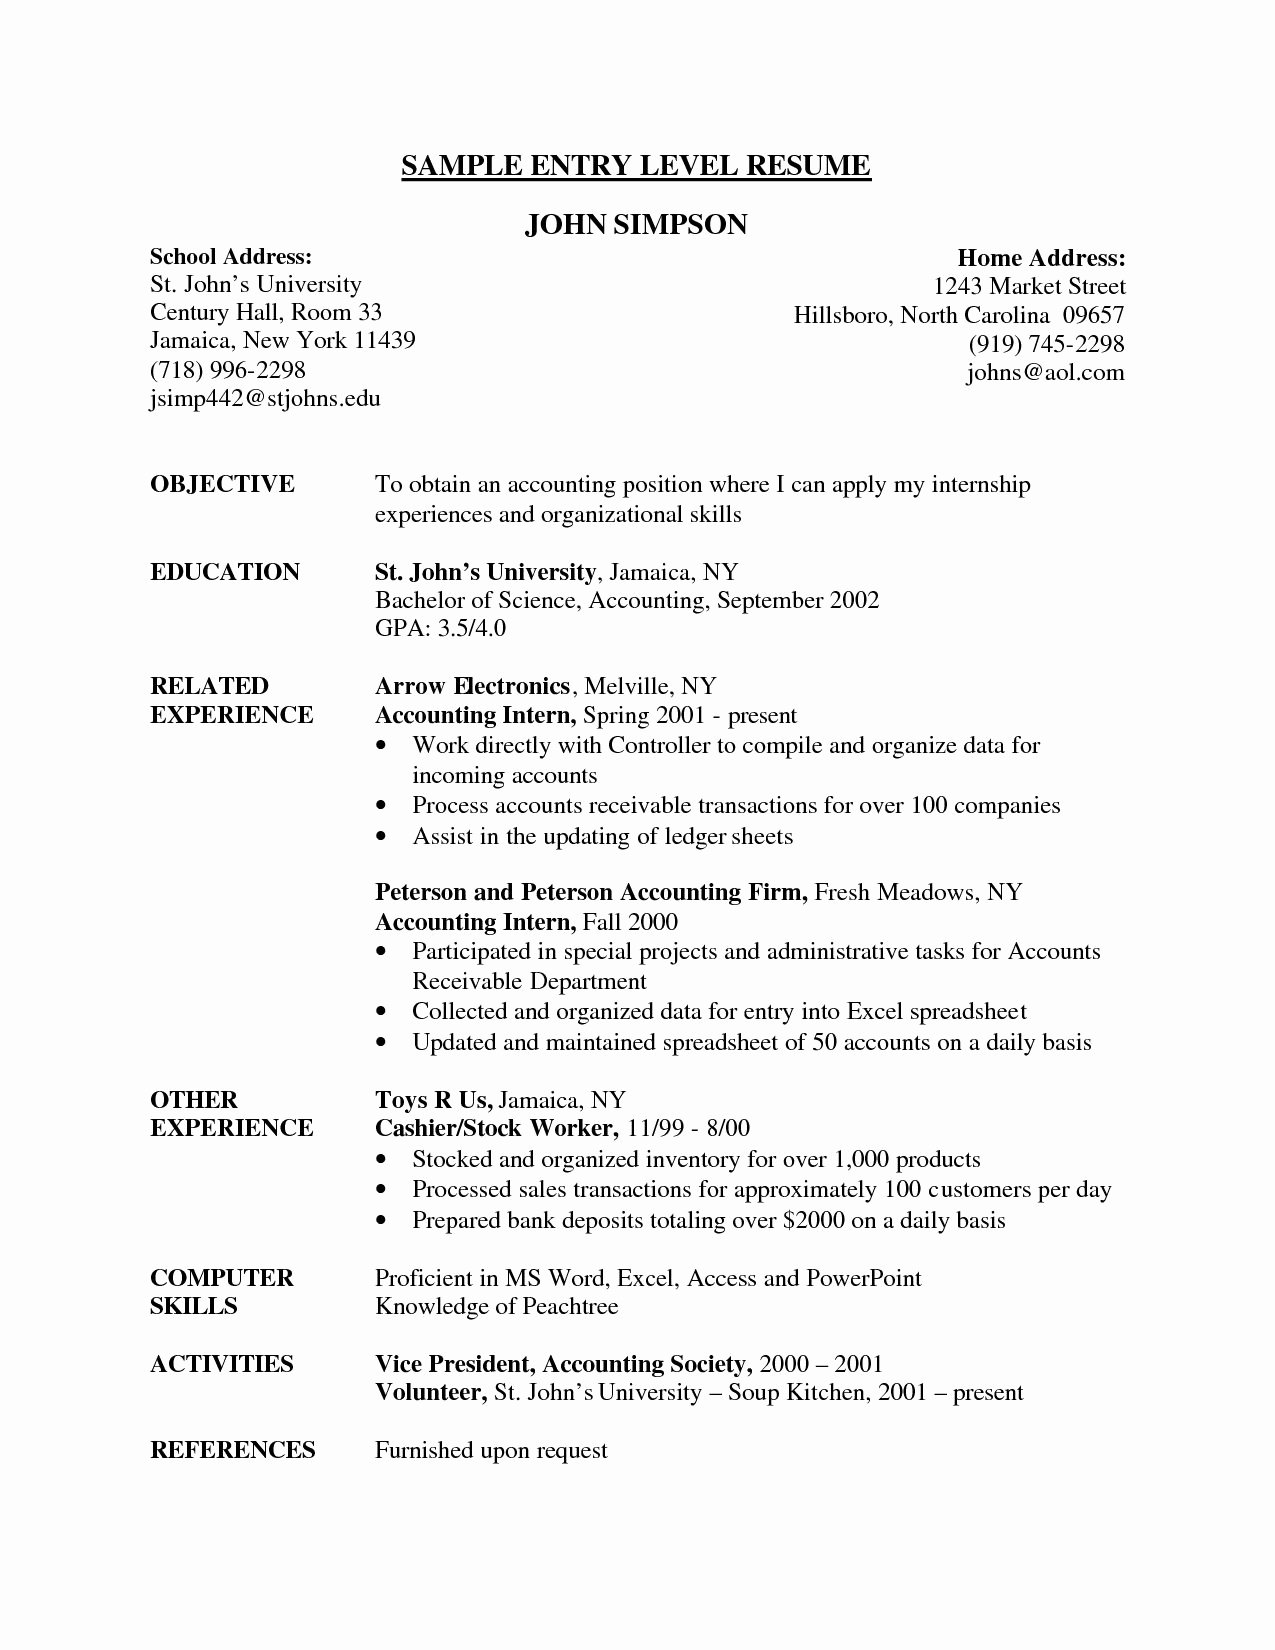 Entry Level Resume High School Awesome Entry Level Resume Samples High School Graduate for